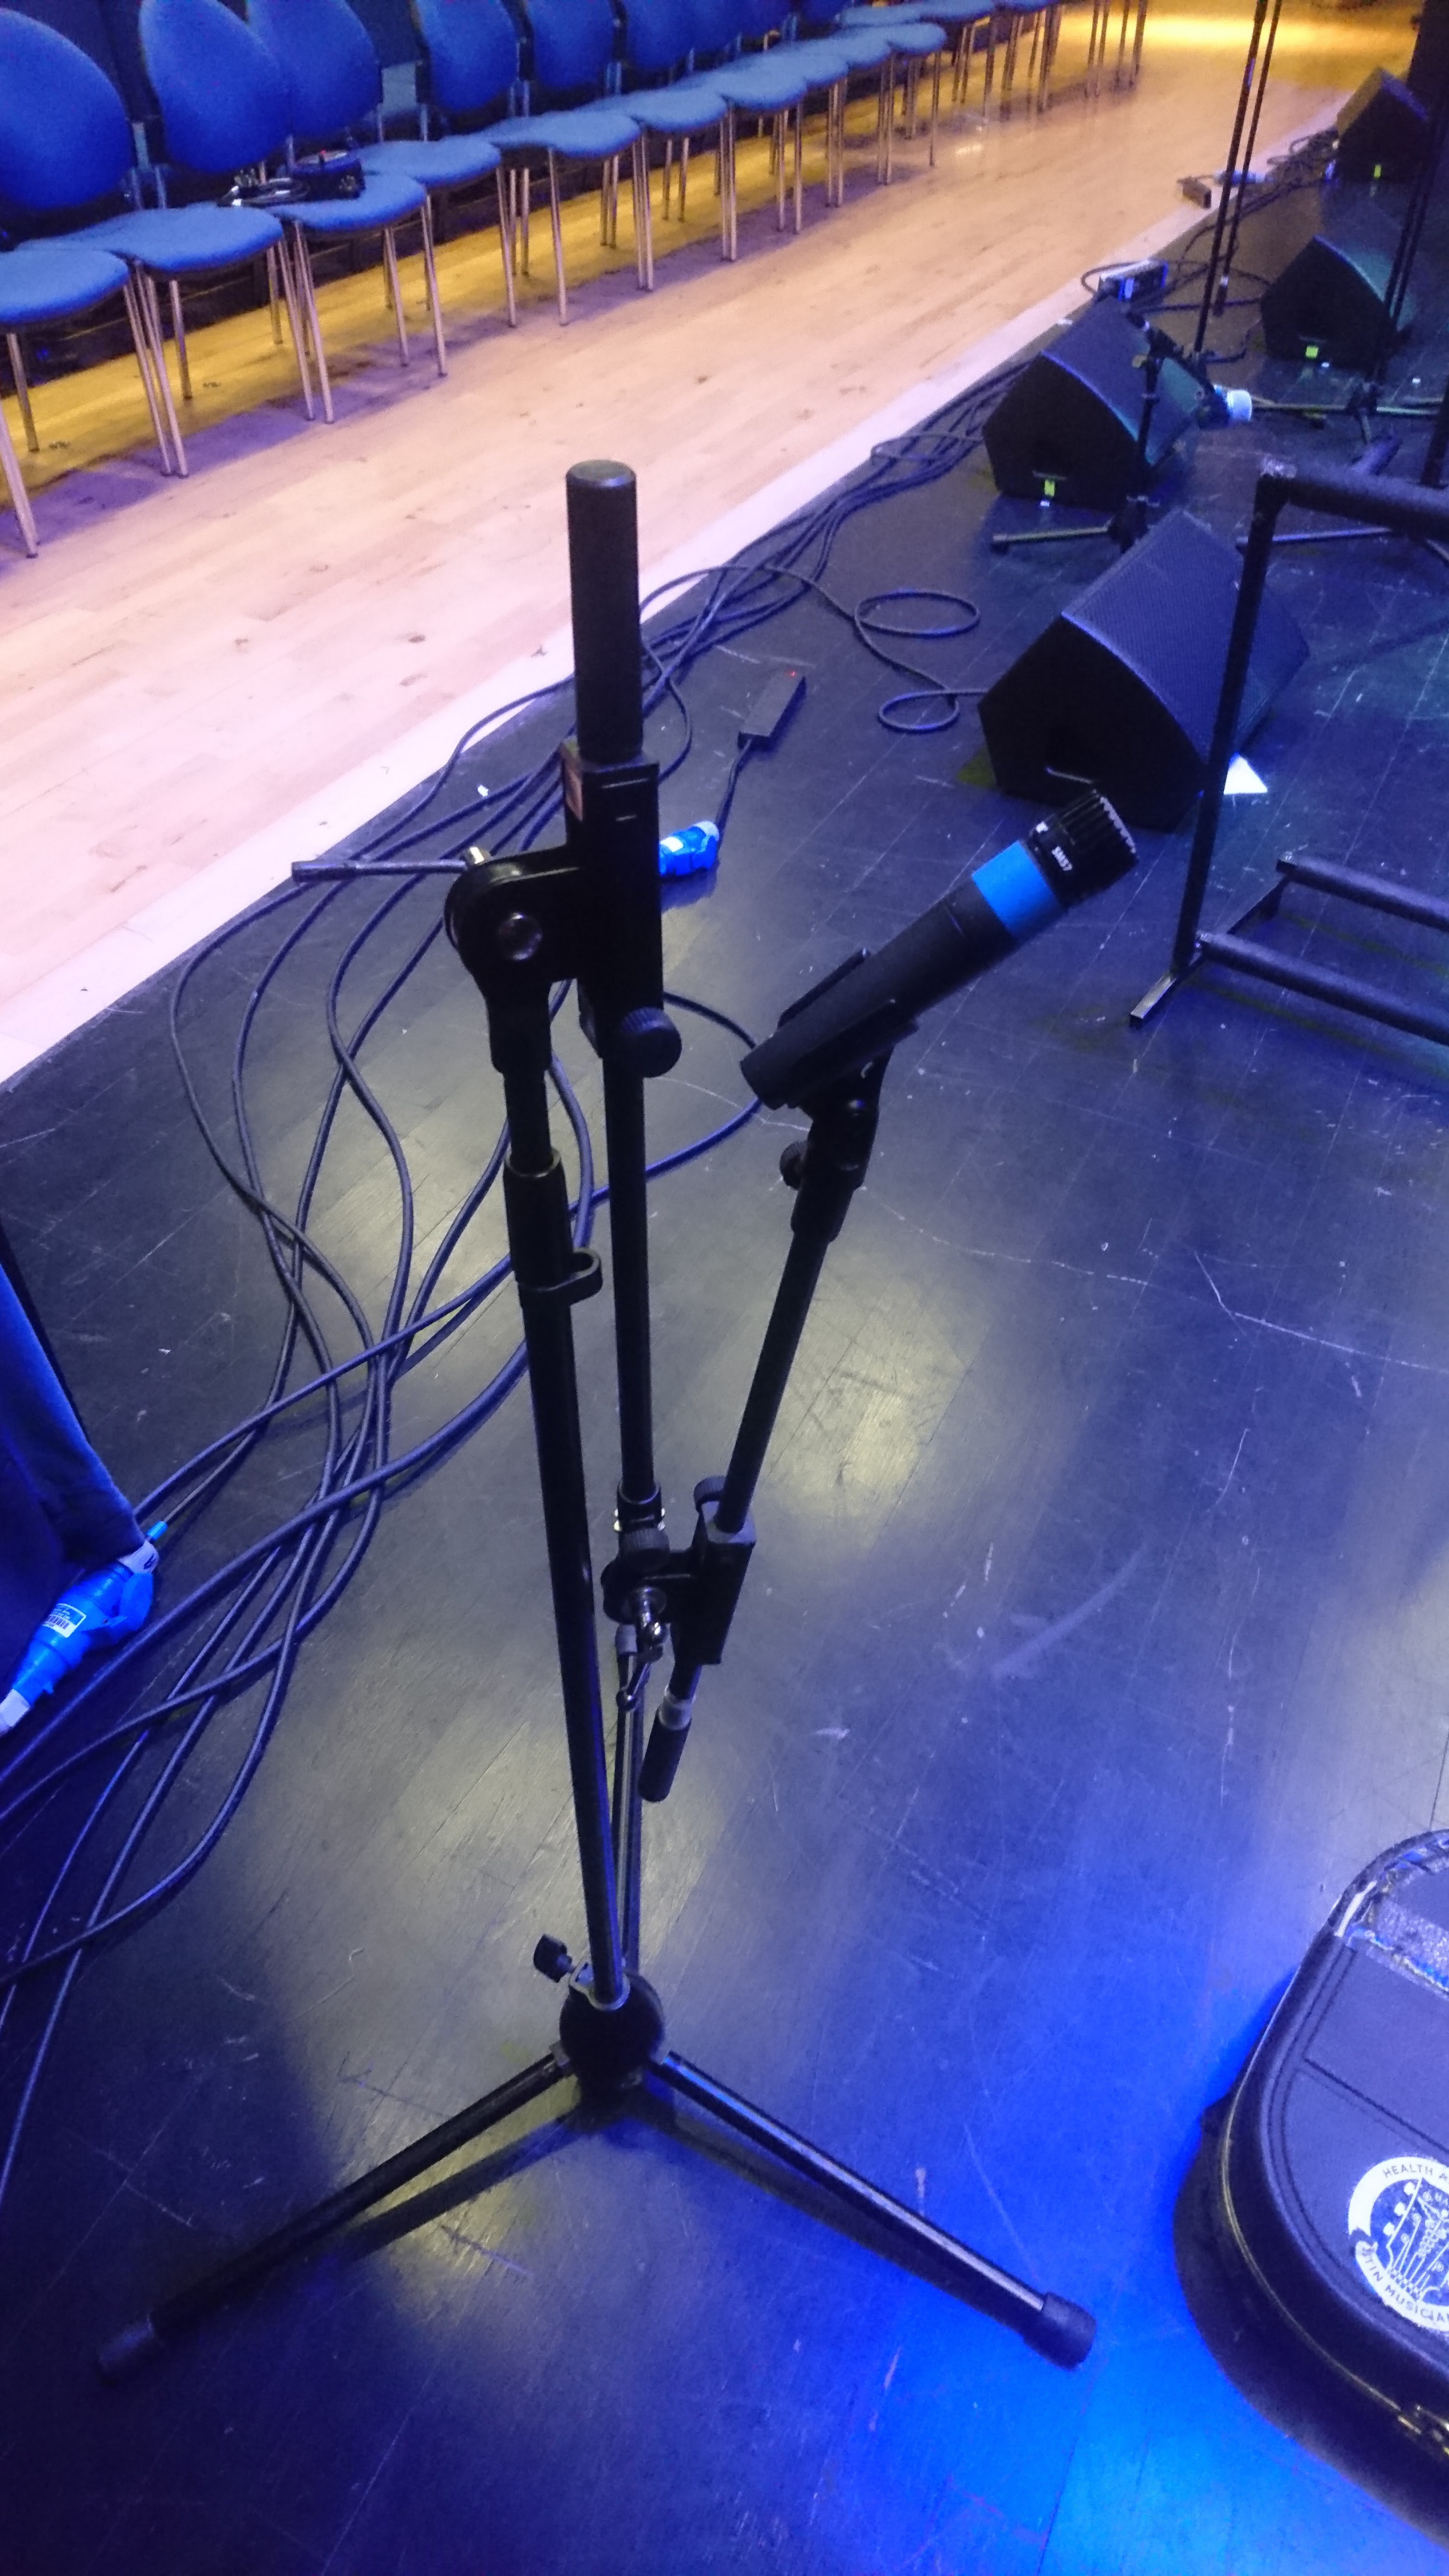 a microphone stand with 2 short boom arms